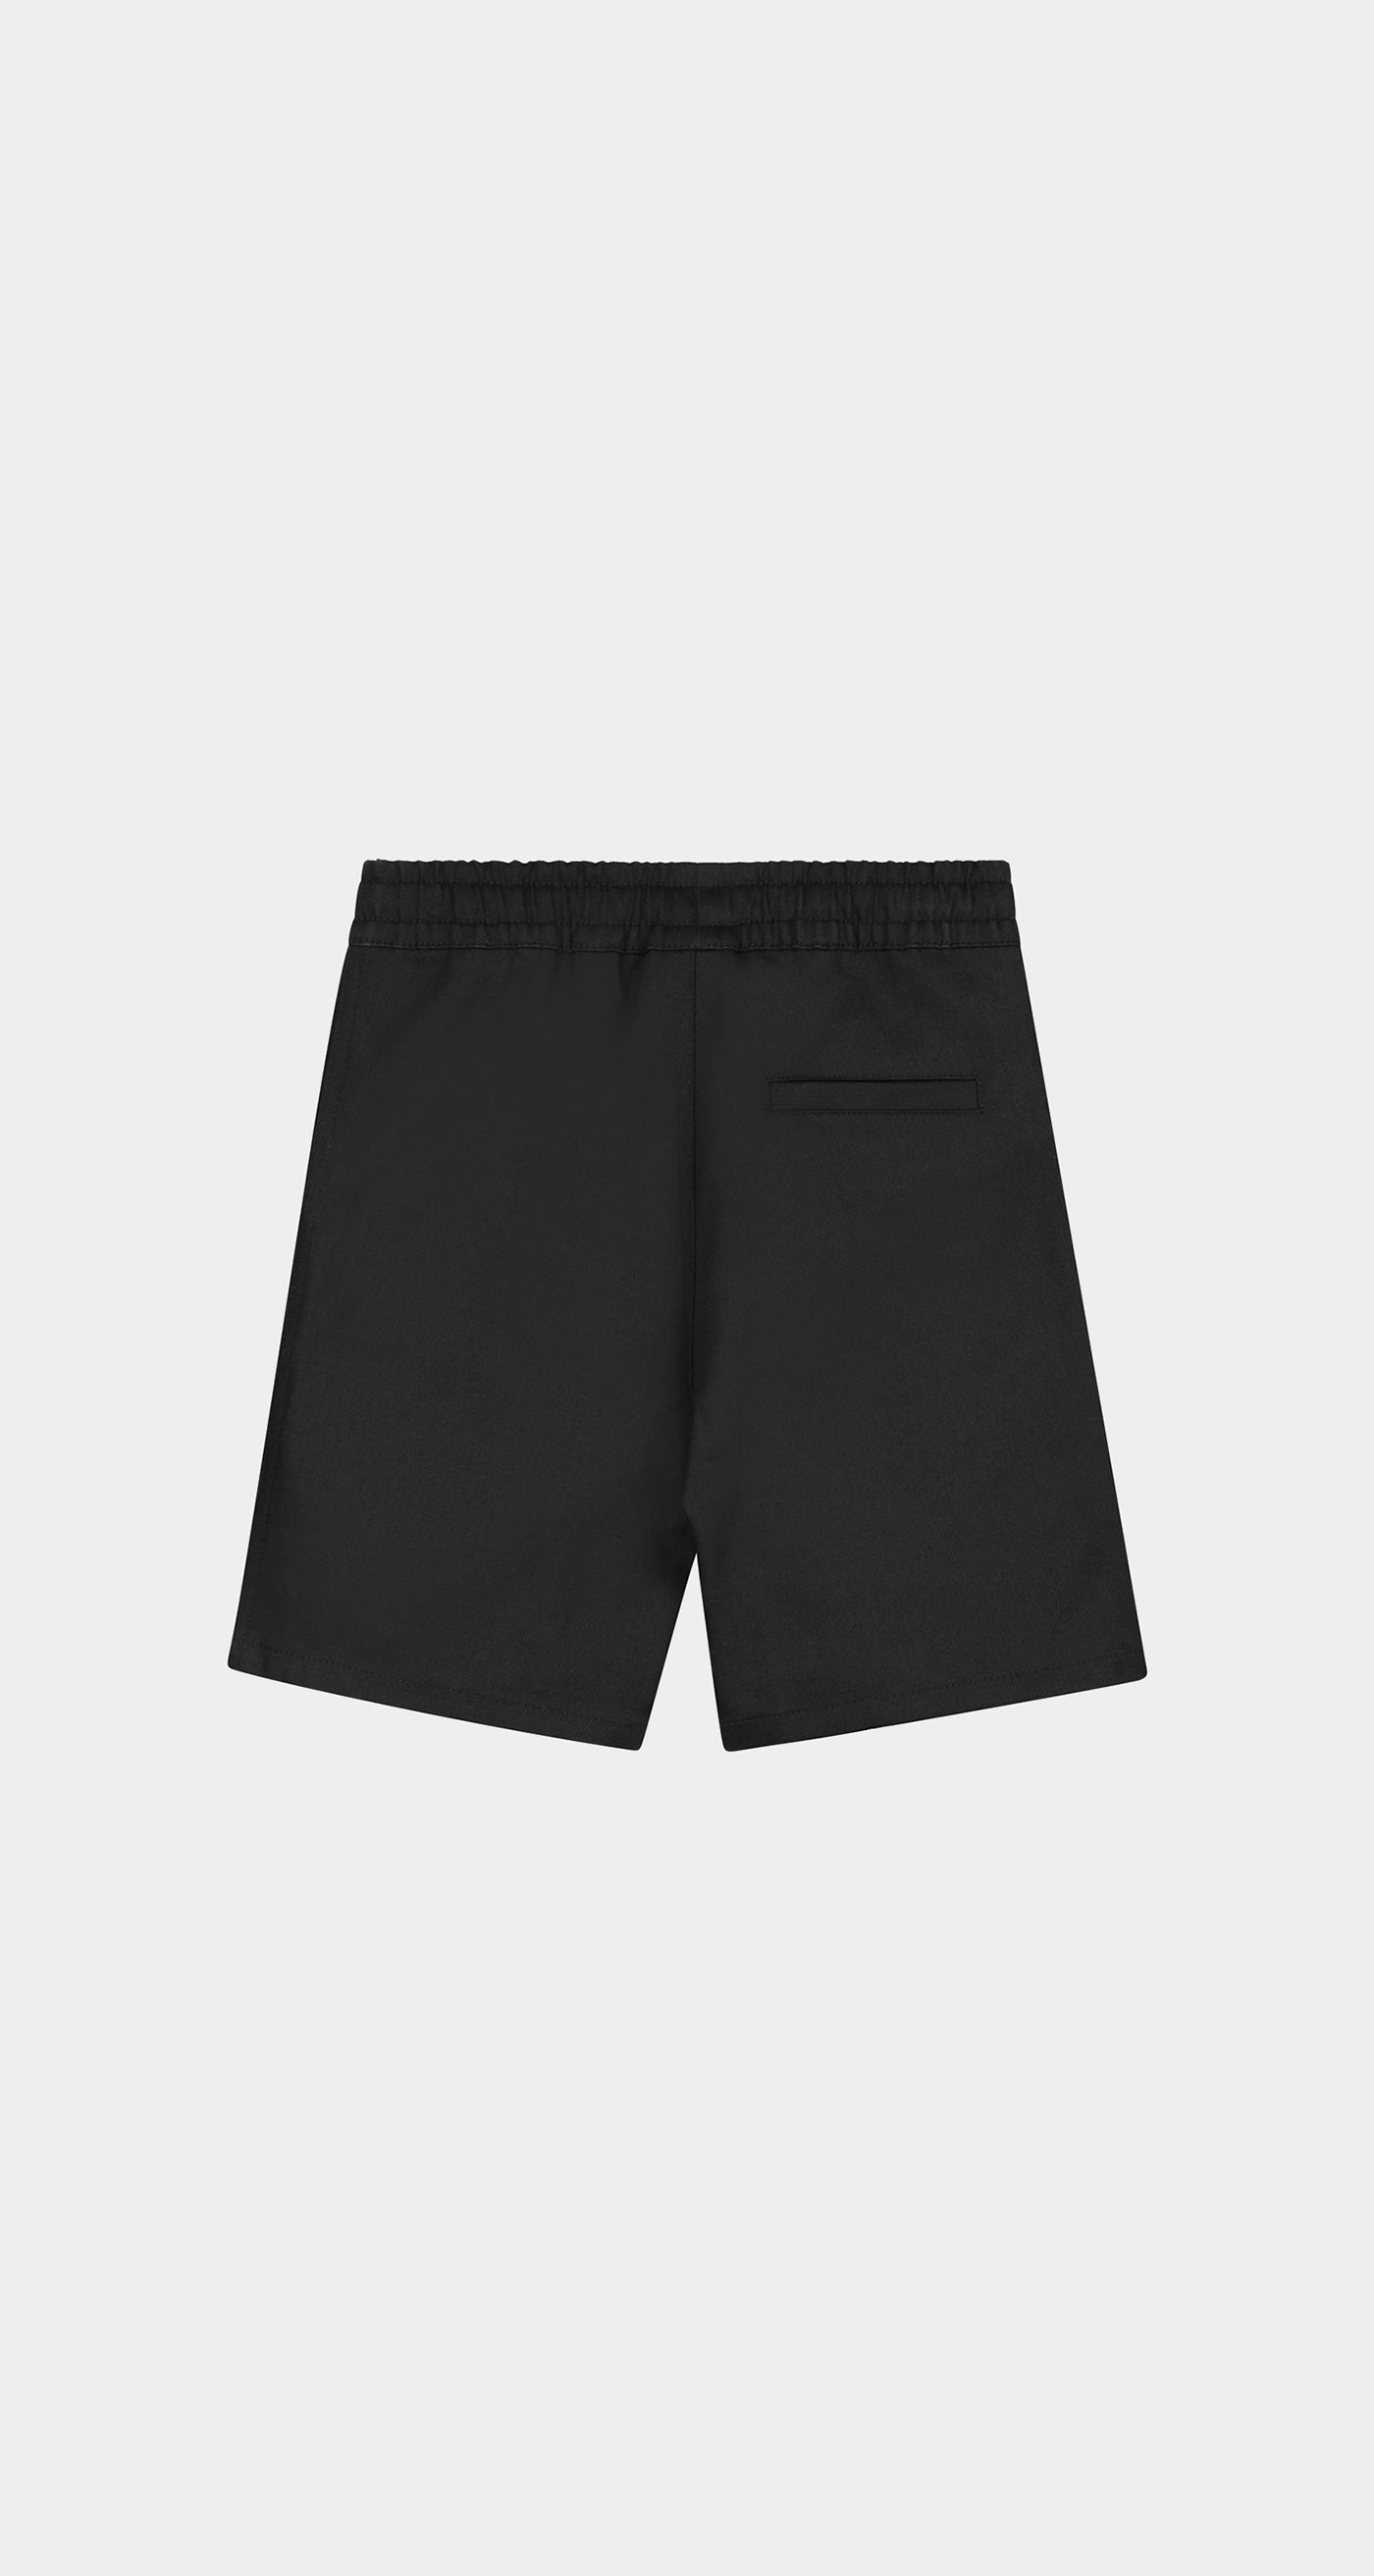 Daily Paper - Black Kids Cargo Shorts - Rear